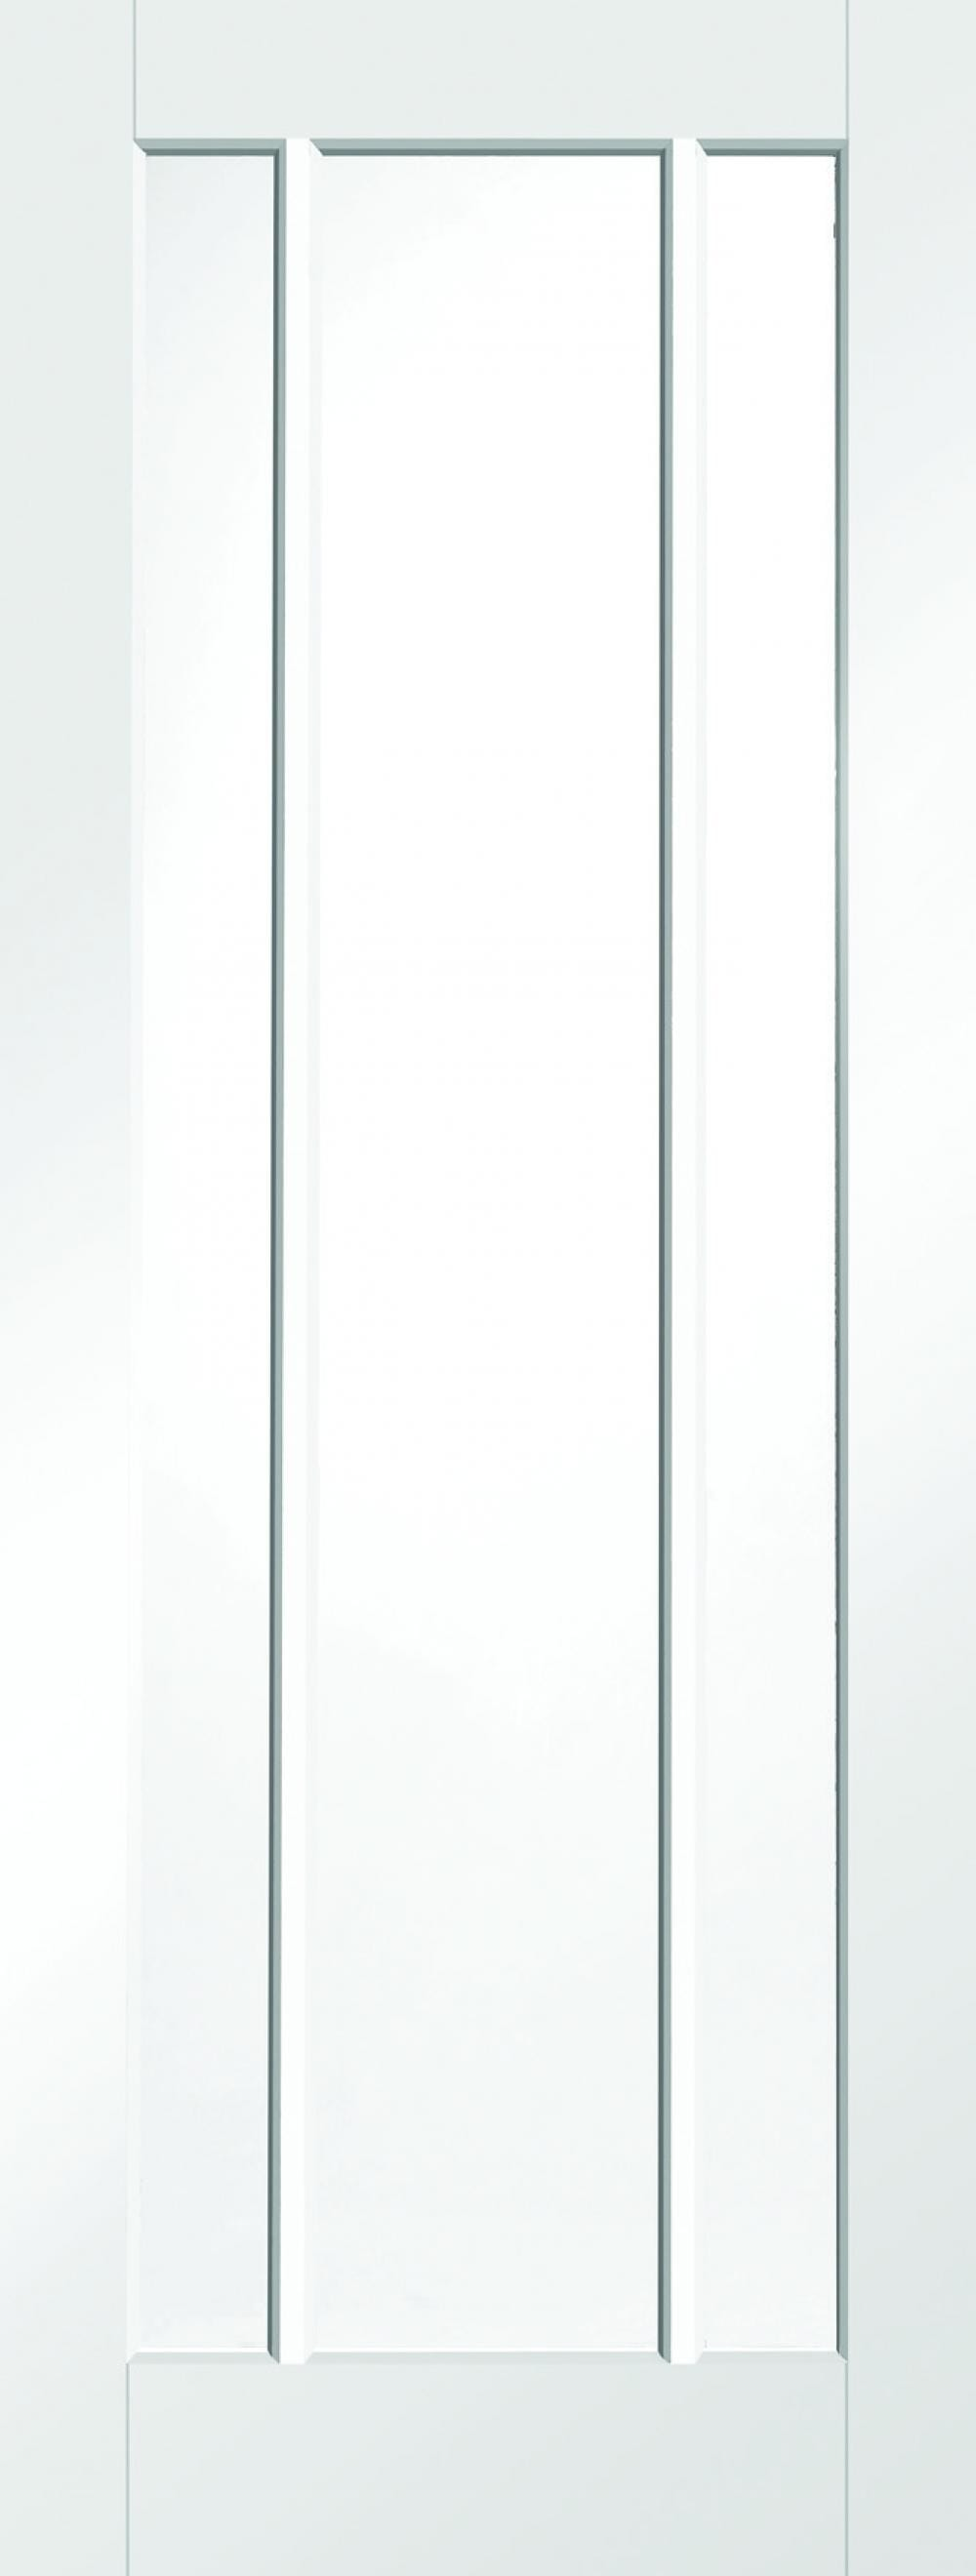 Worcester White - Clear Glass Image